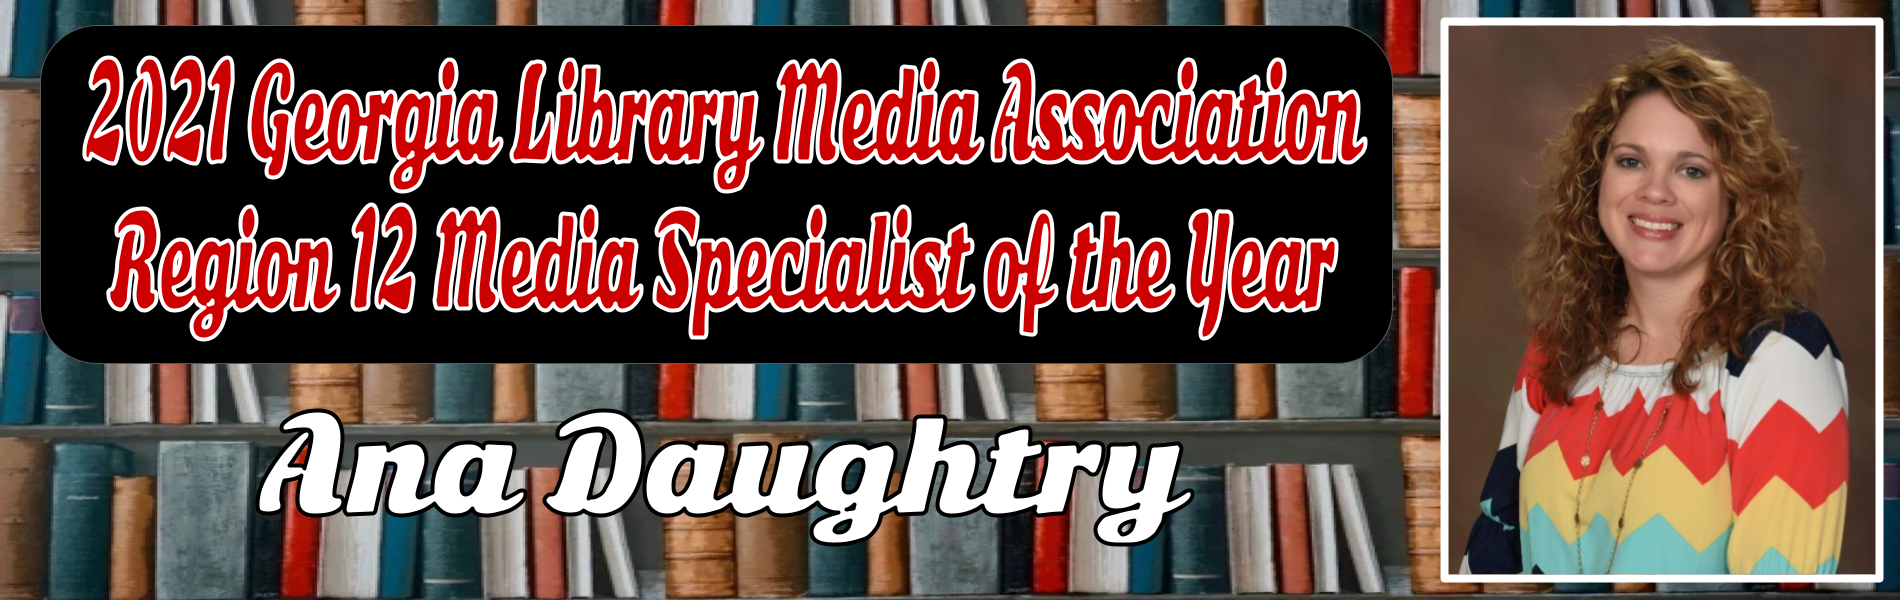 Media Specialist of the Year